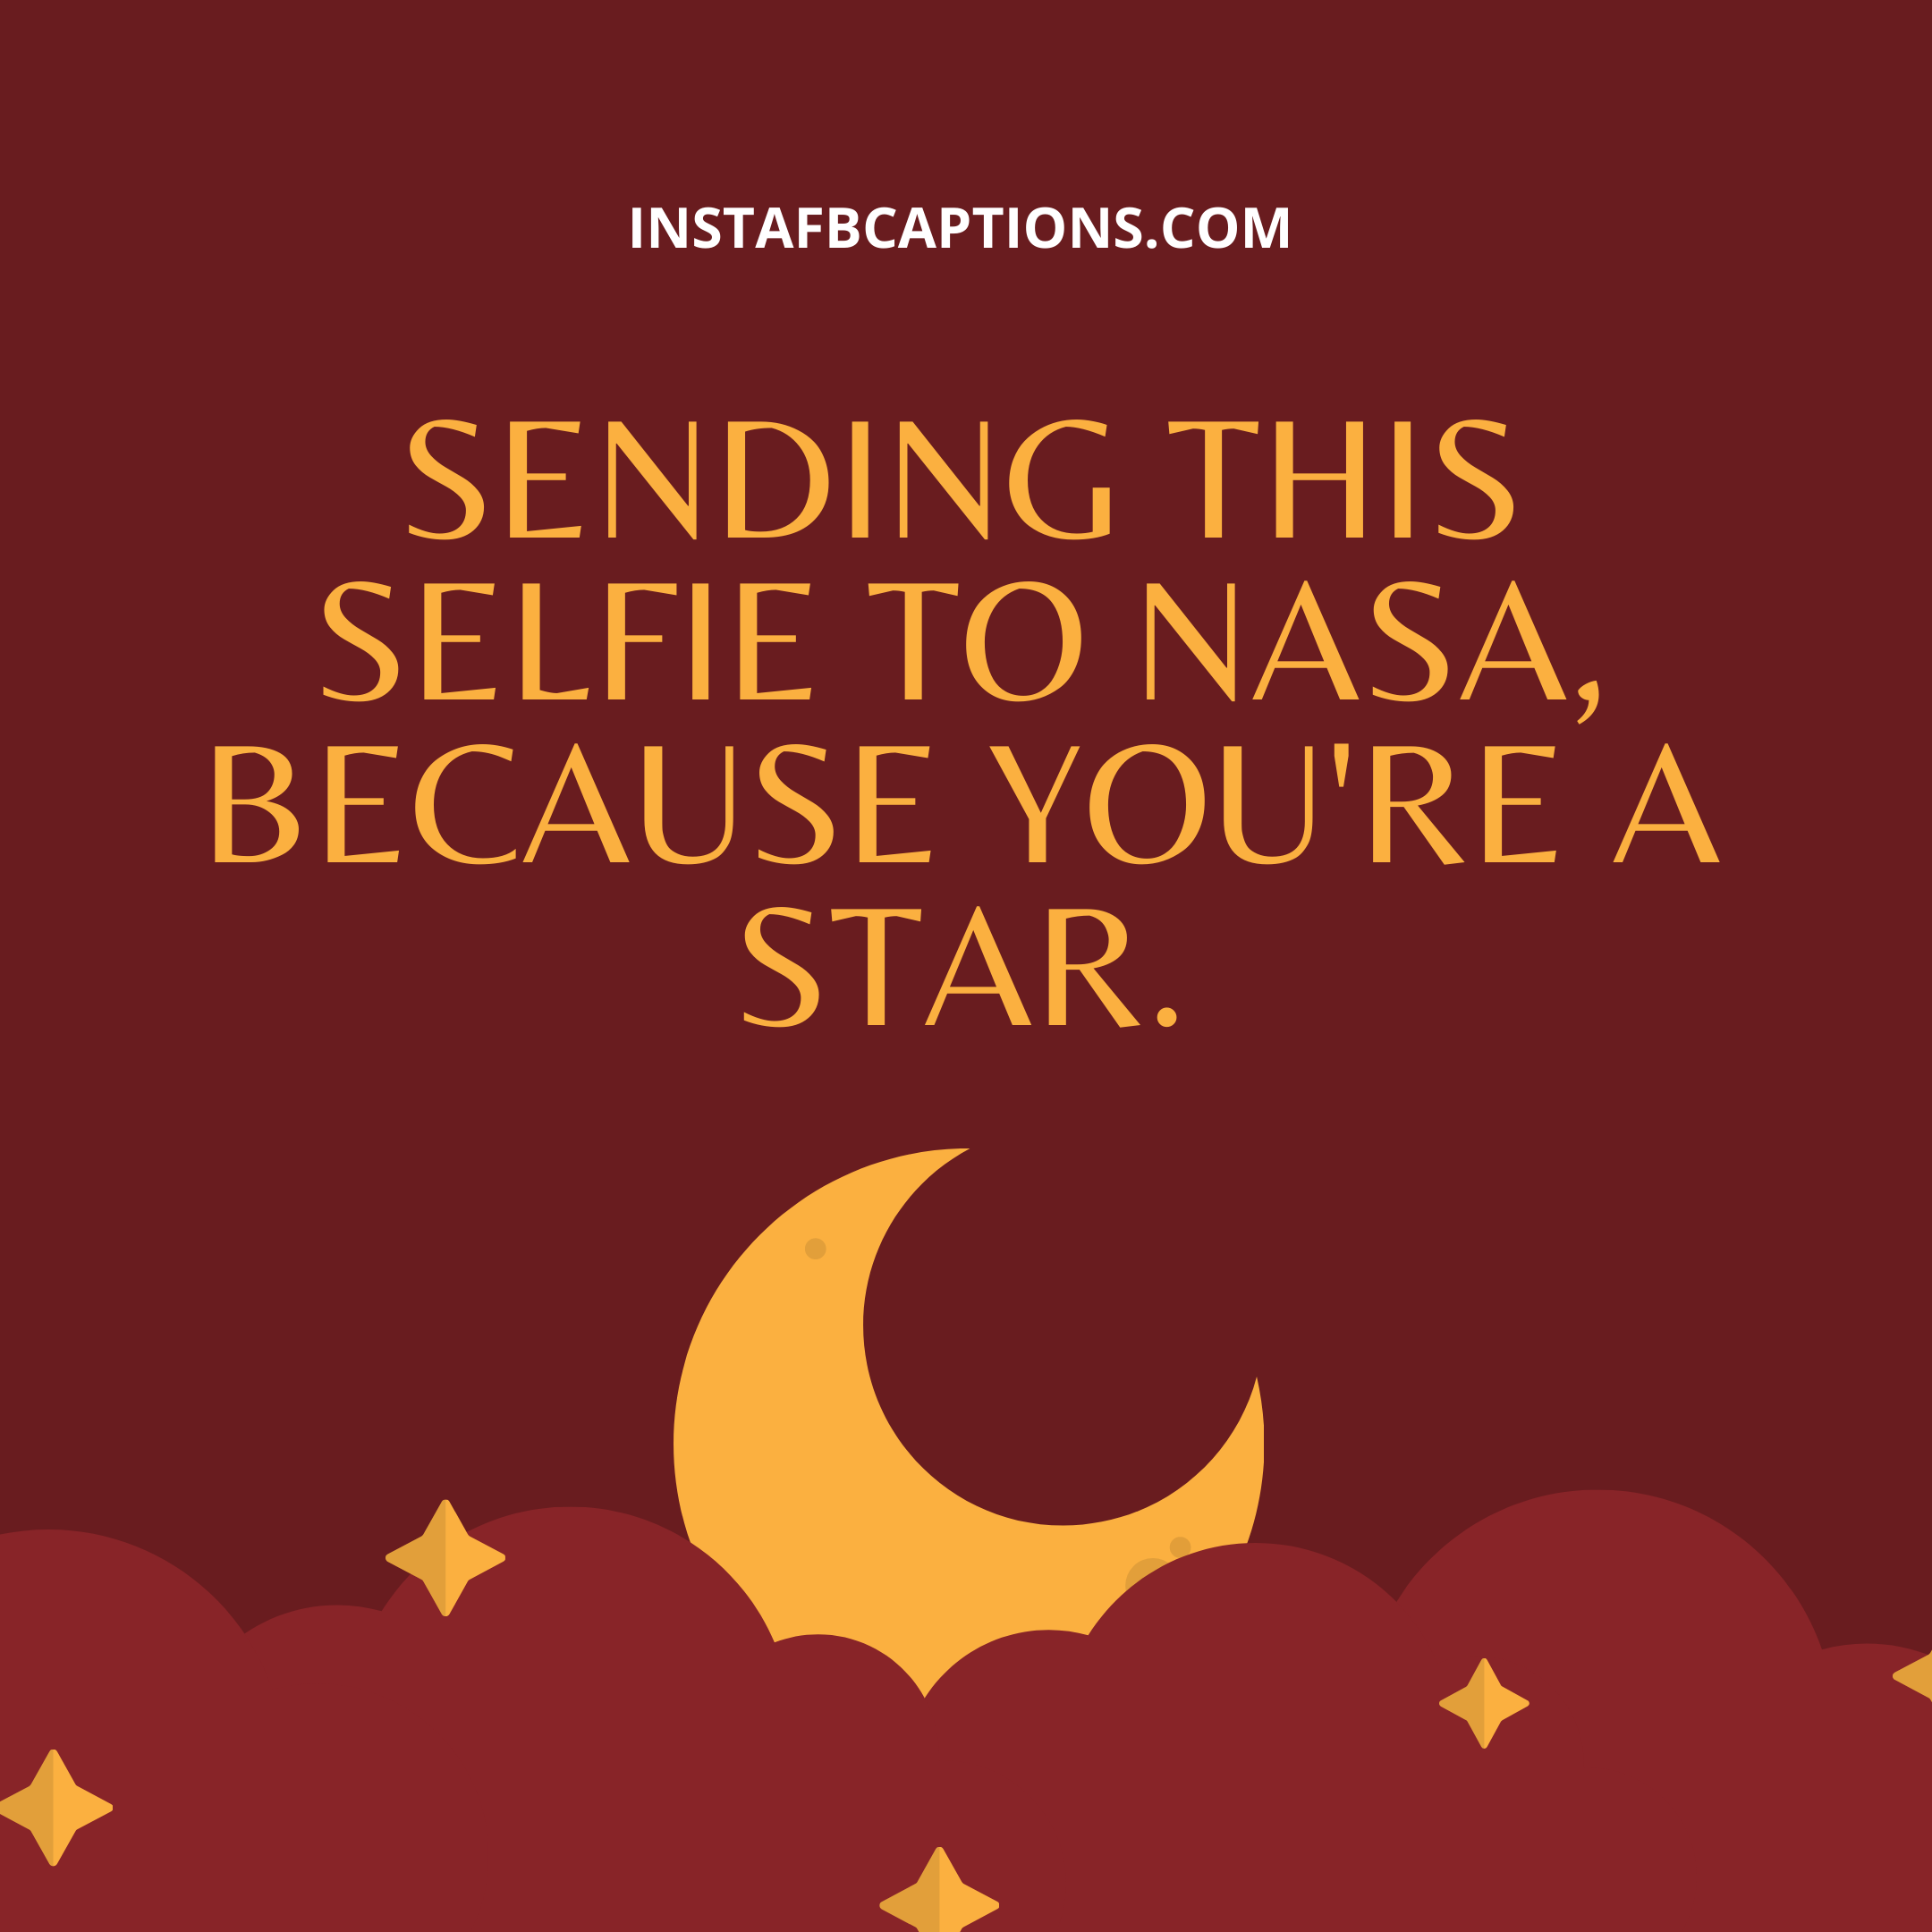 Sending This Selfie To Nasa, Because You're A Star  - Sending this selfie to NASA because youre a star - 300+ Funny Comments For Best Friends | (Bestie Friend)